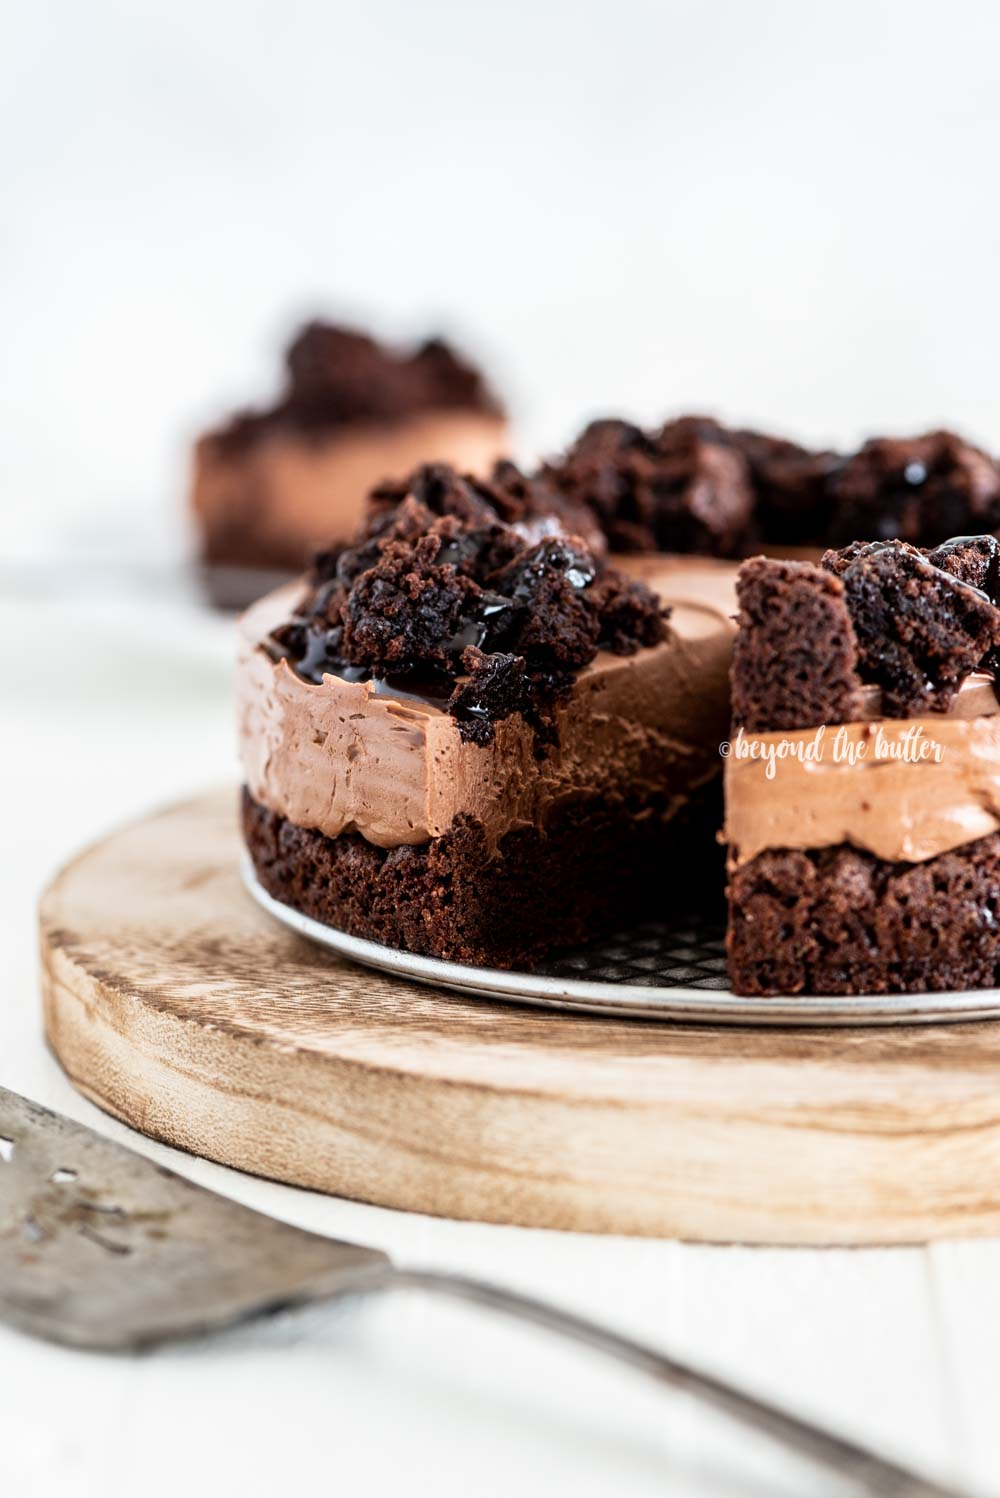 Easy Chocolate Brownie Cheesecake recipe   All Images © Beyond the Butter, LLC